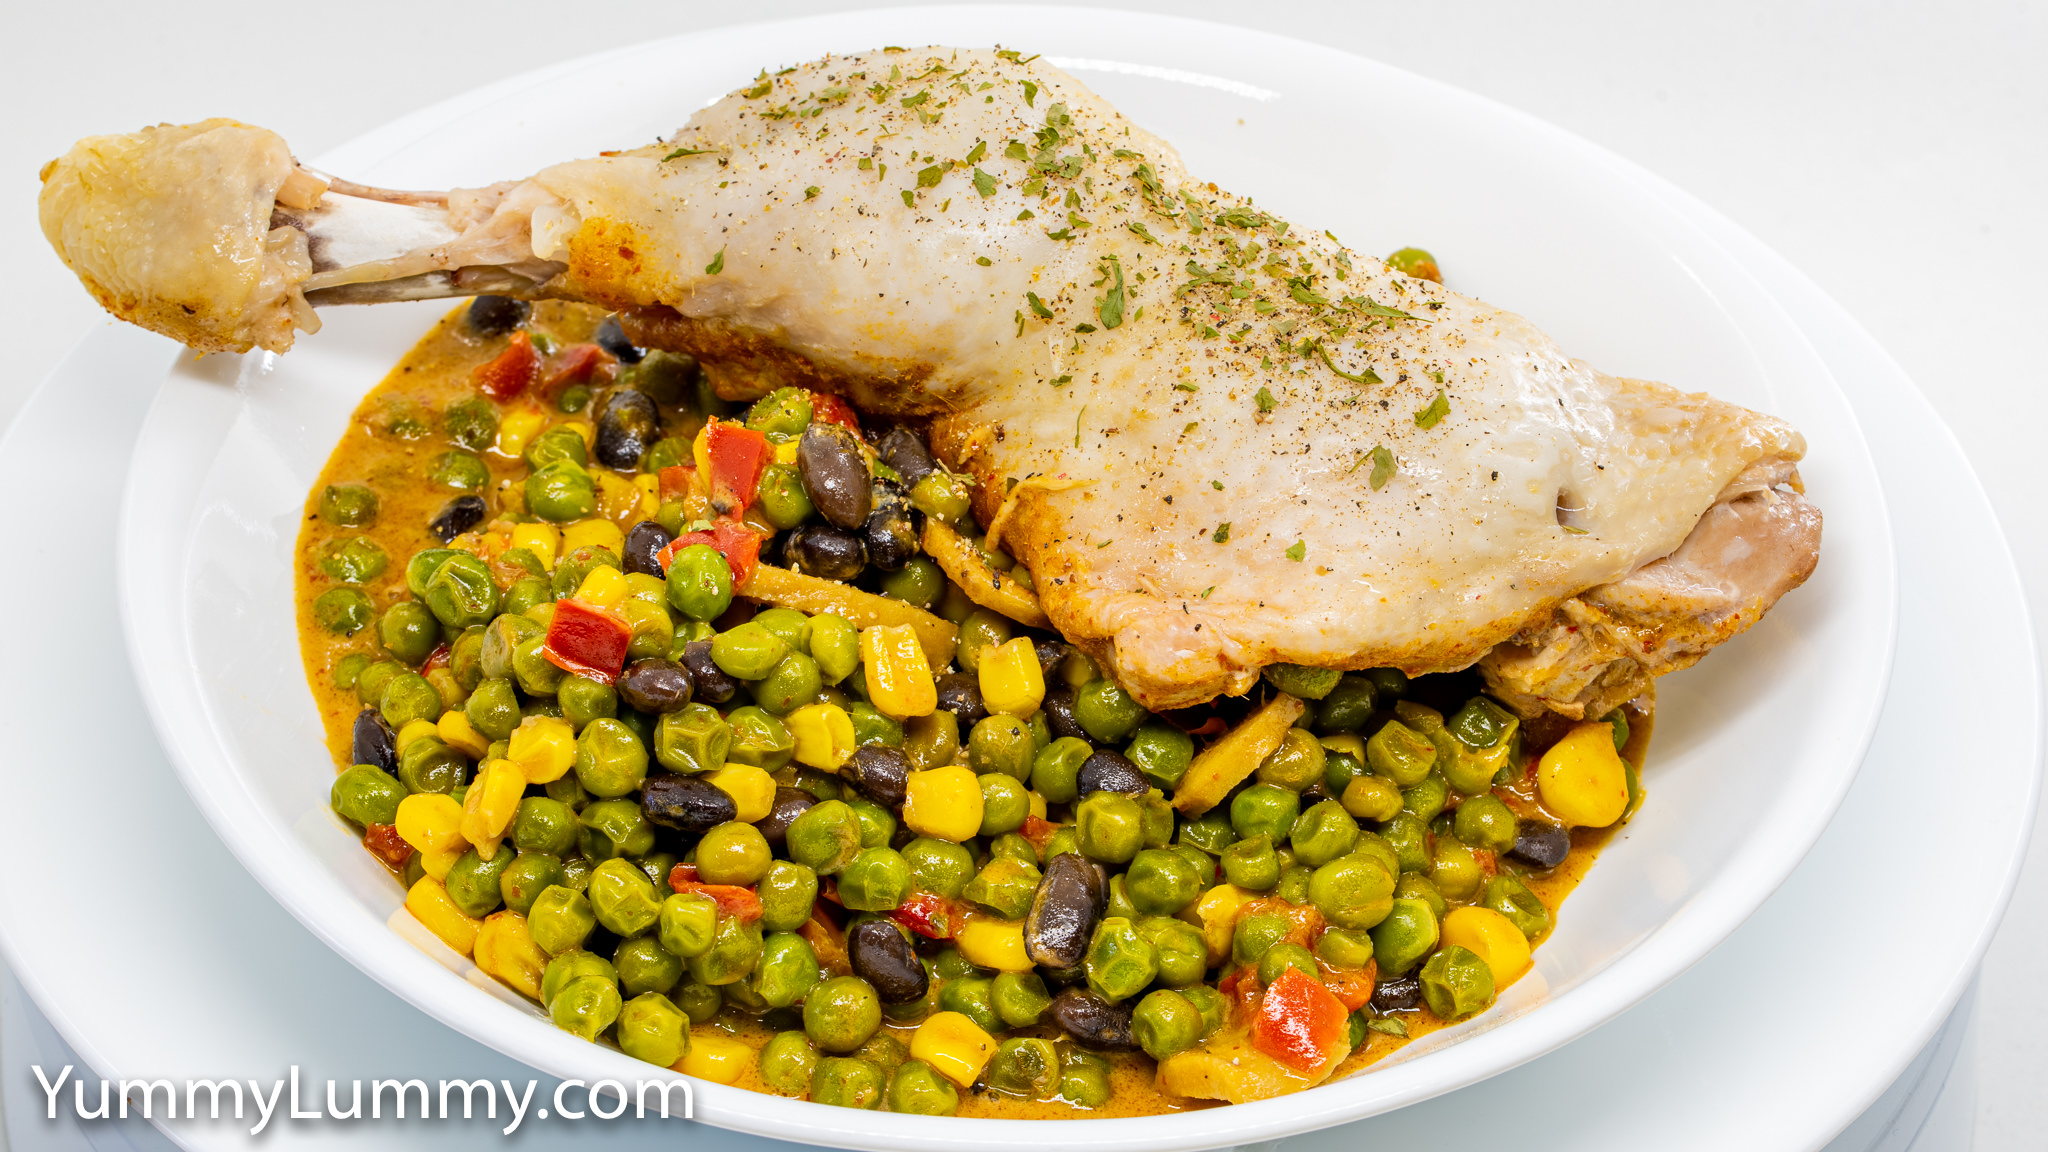 Photograph of Curry chicken and frozen vegetables. Gary Lum.